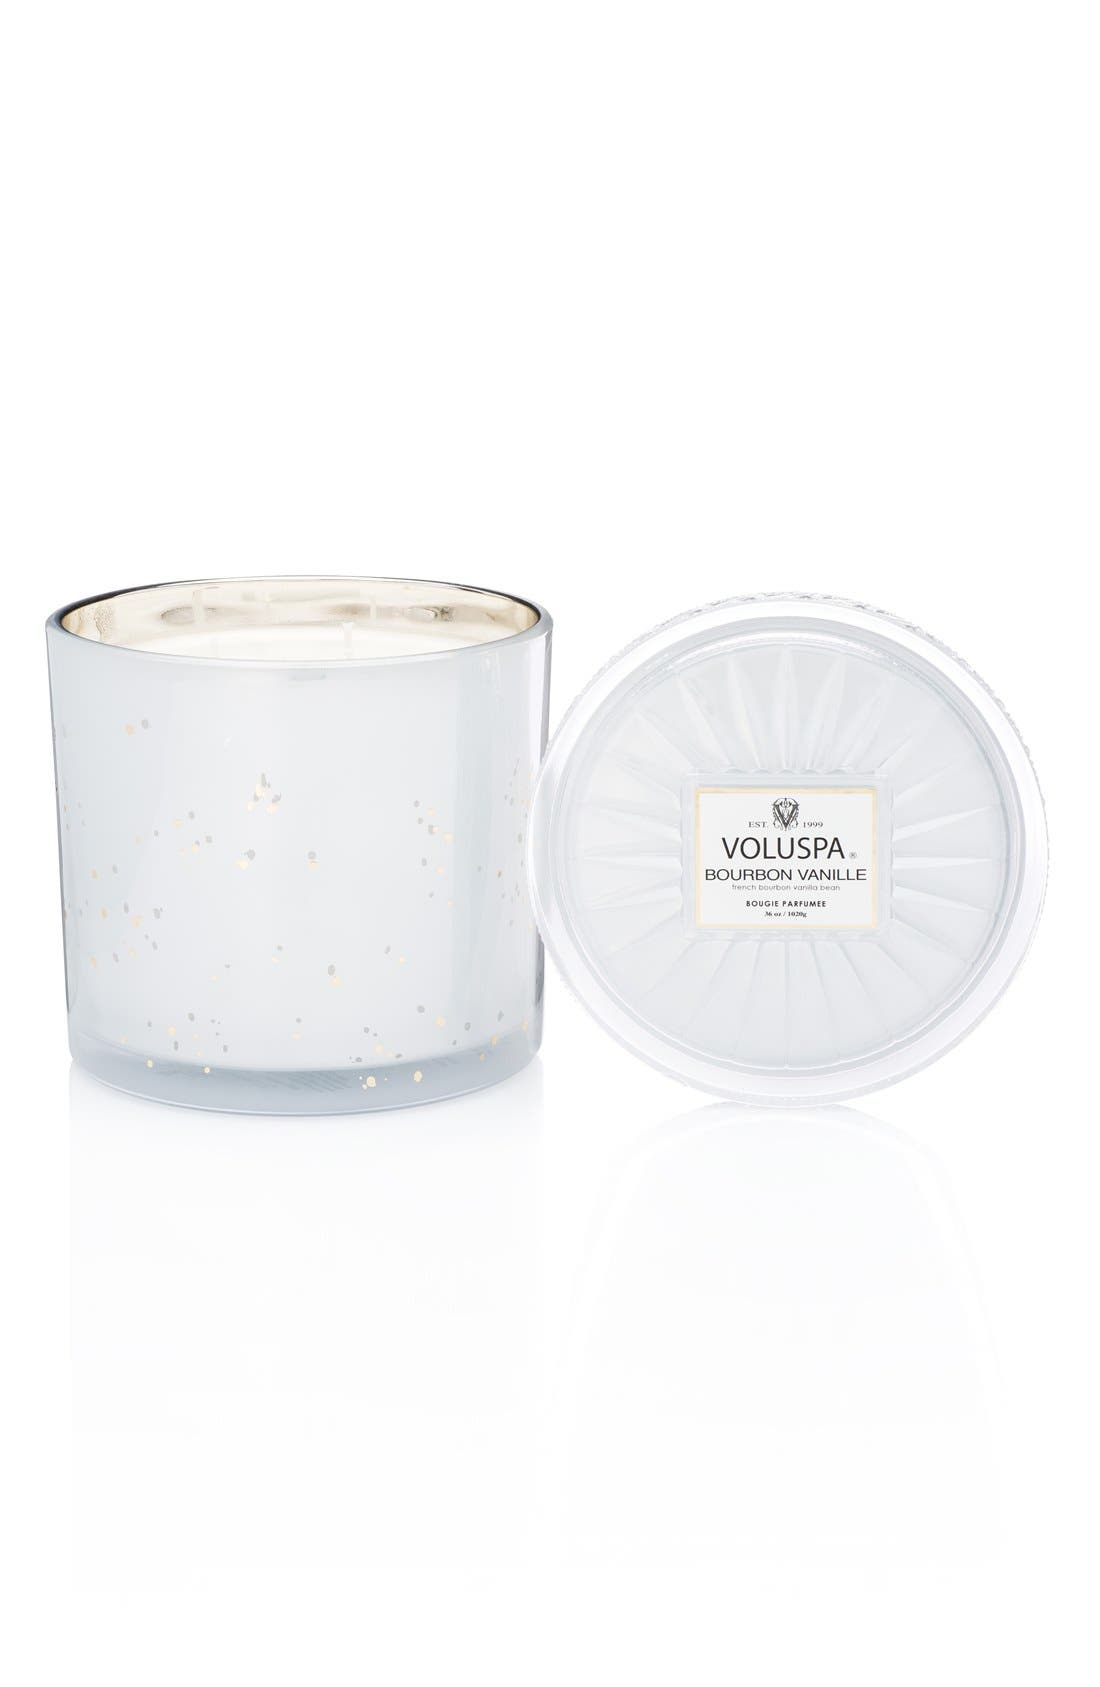 Alternate Image 1 Selected - Voluspa 'Vermeil - French Bourbon Vanille' Grande Maison Candle